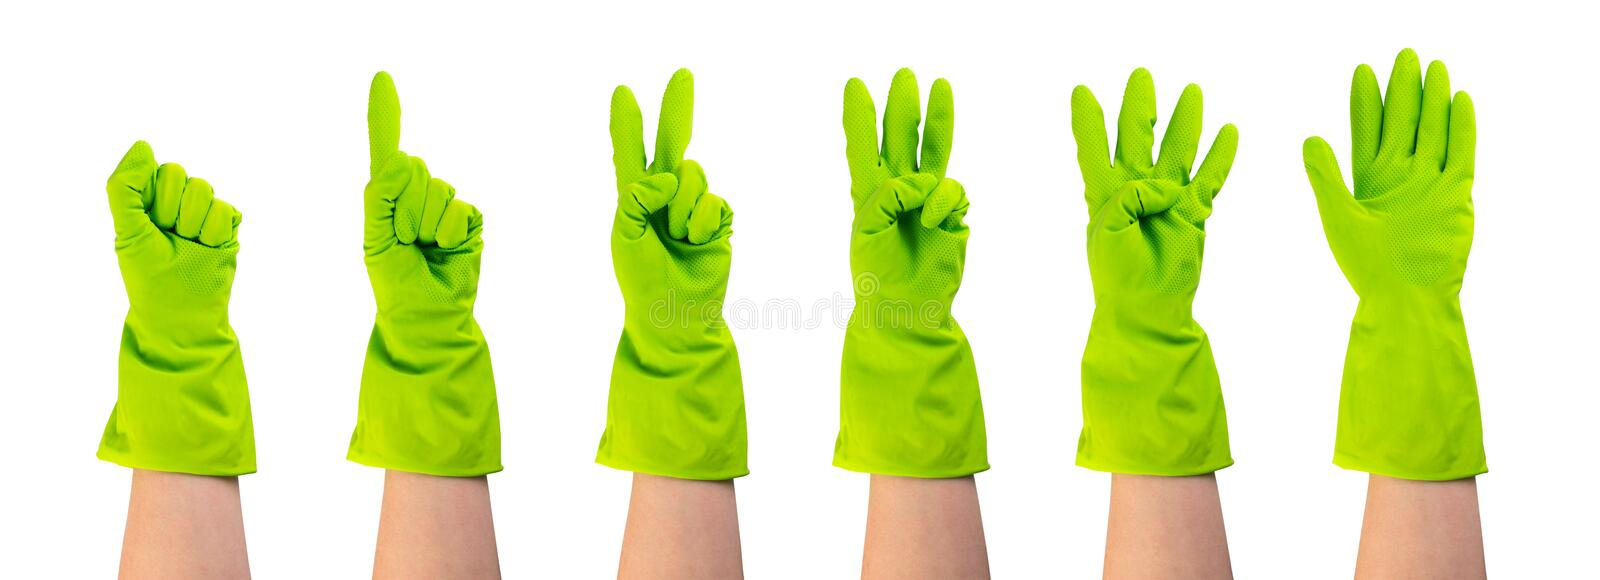 Set of hands in green protective rubber gloves isolated stock photos